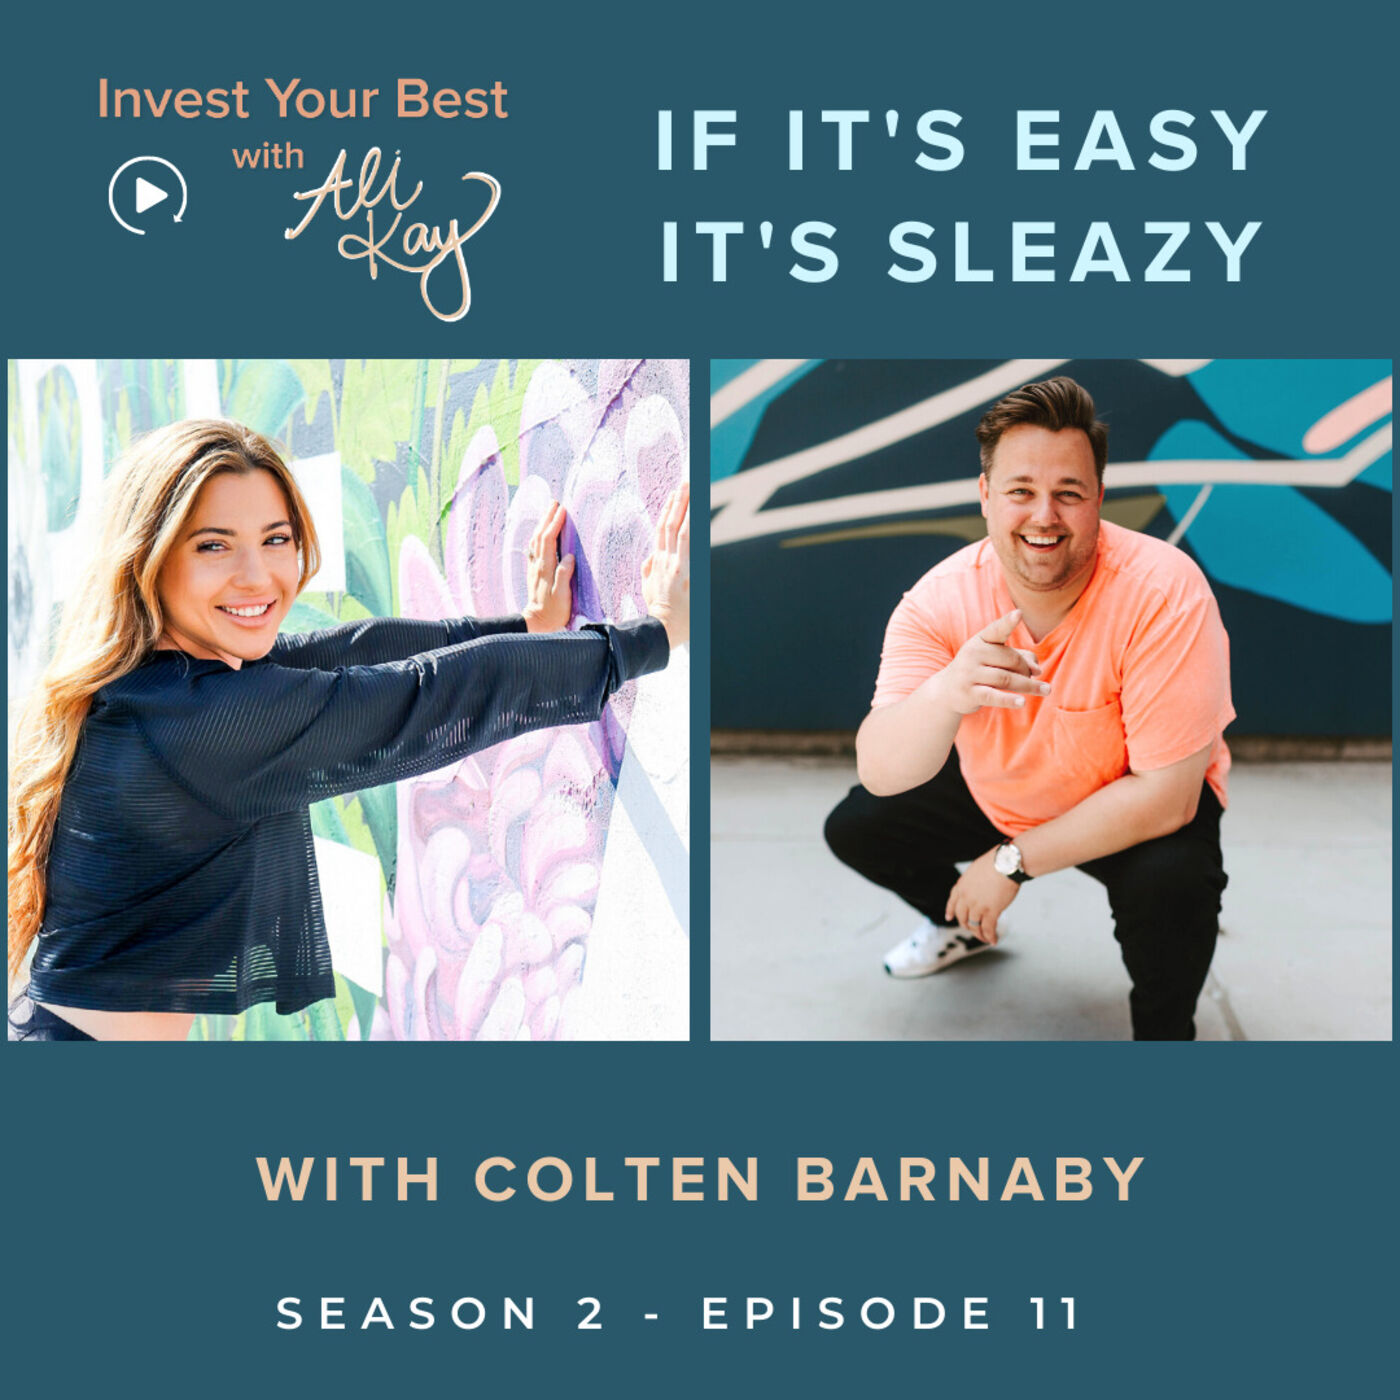 If It's Easy It's Sleazy with Colten Barnaby